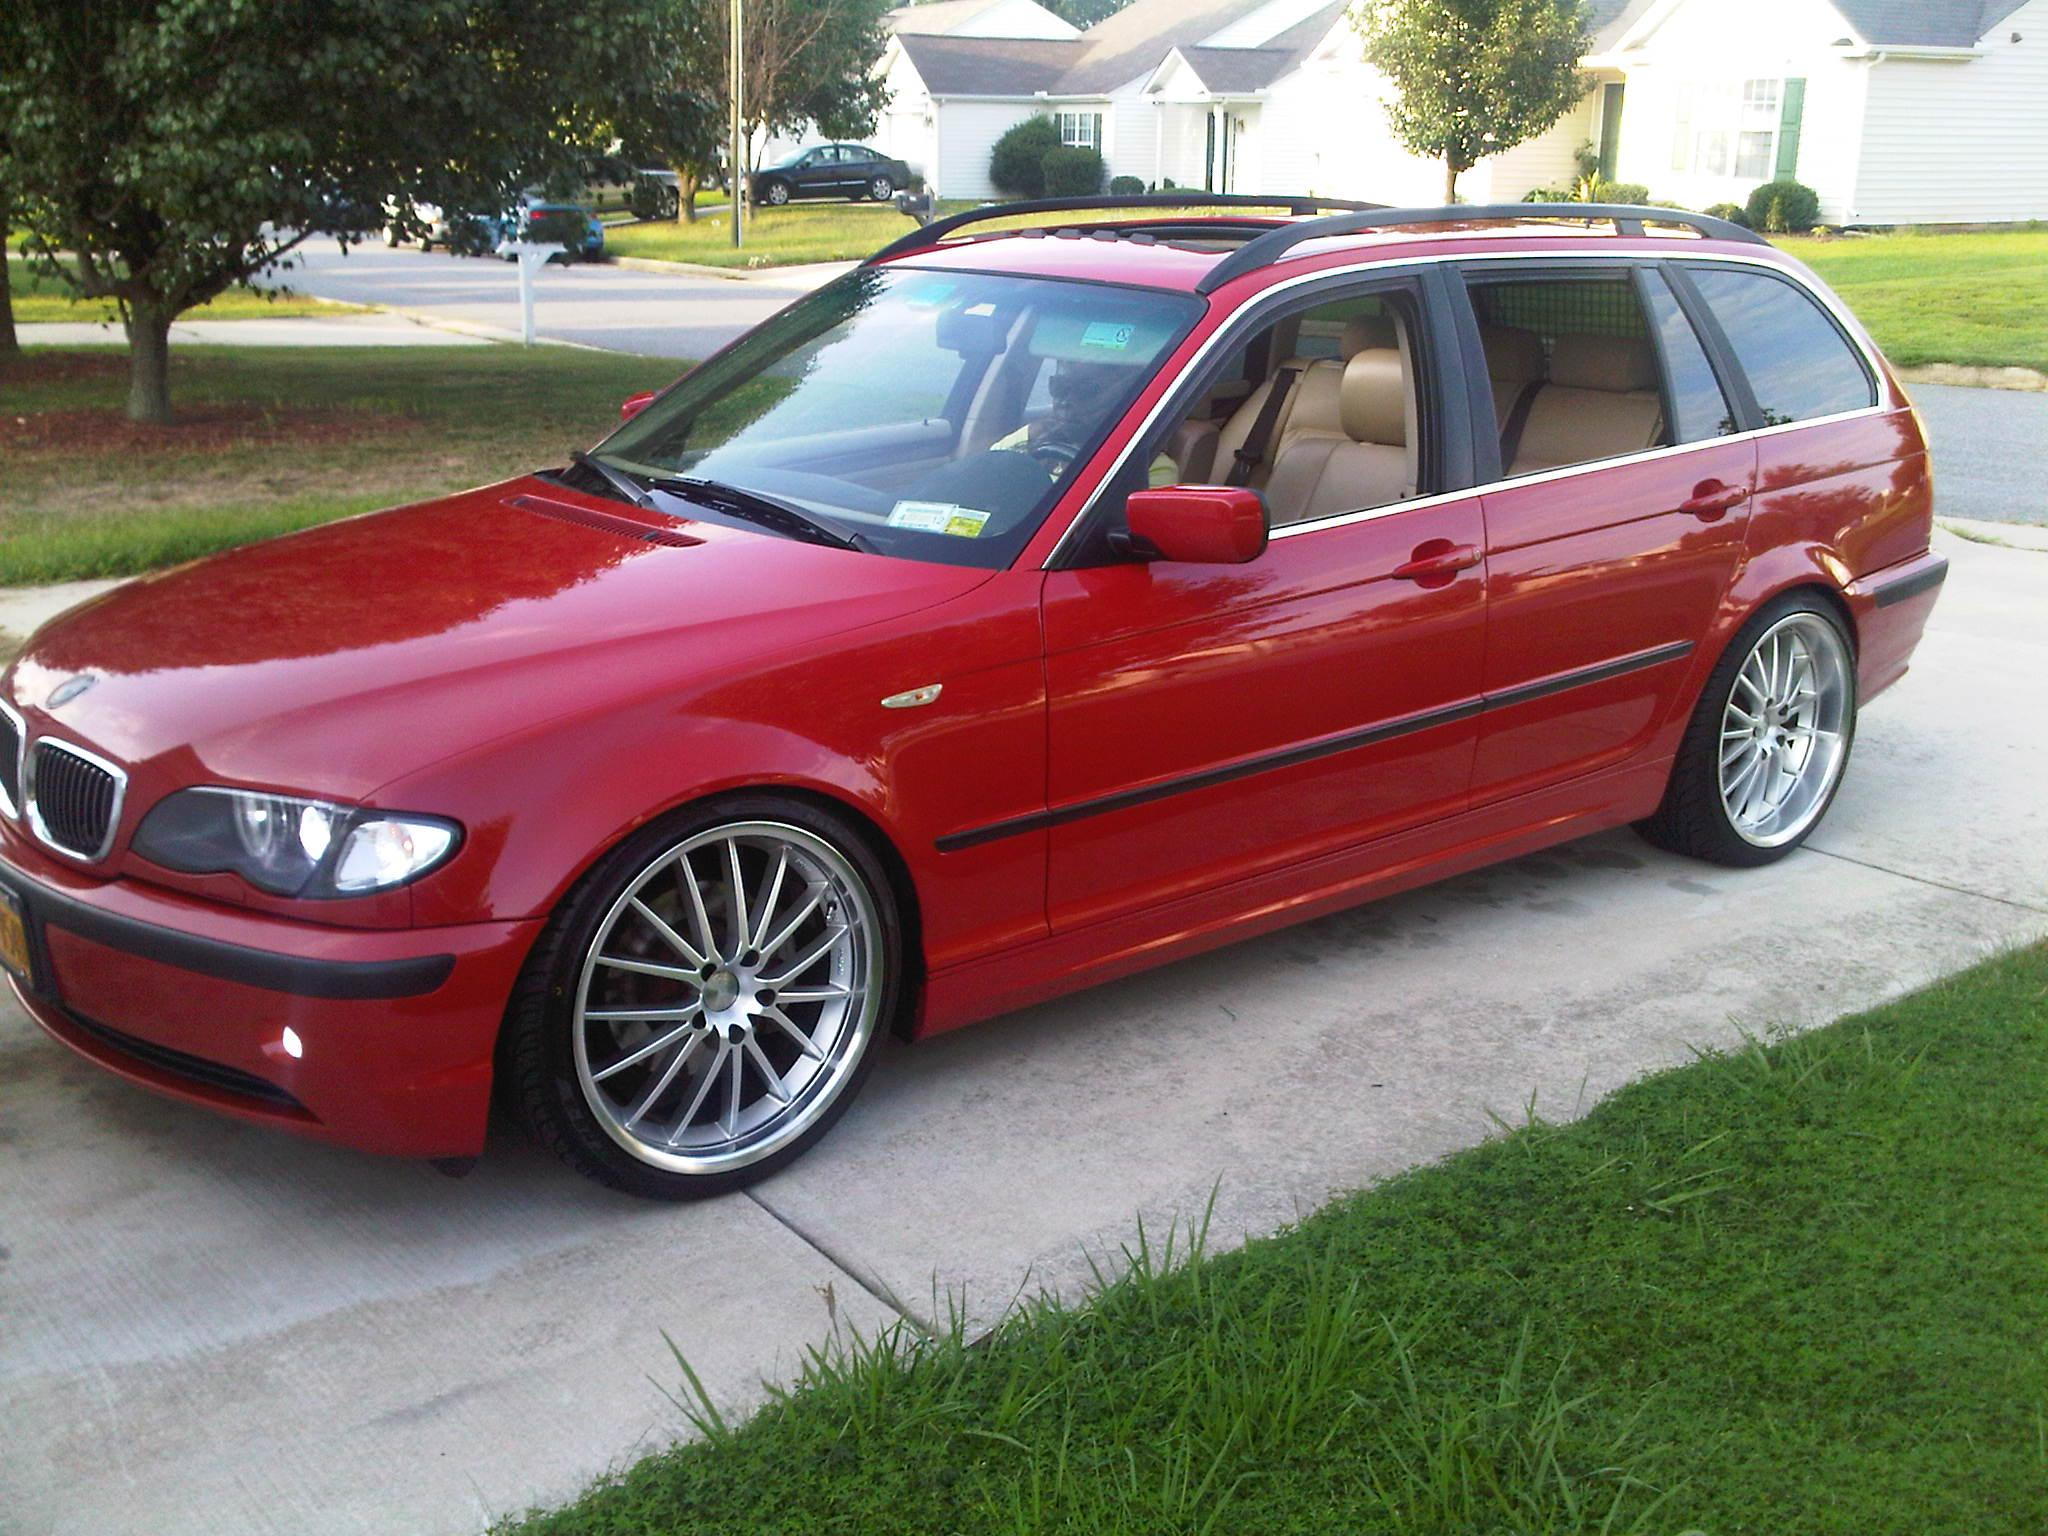 Breeze3852 2002 Bmw 3 Series325it Wagon 4d Specs Photos Modification Info At Cardomain